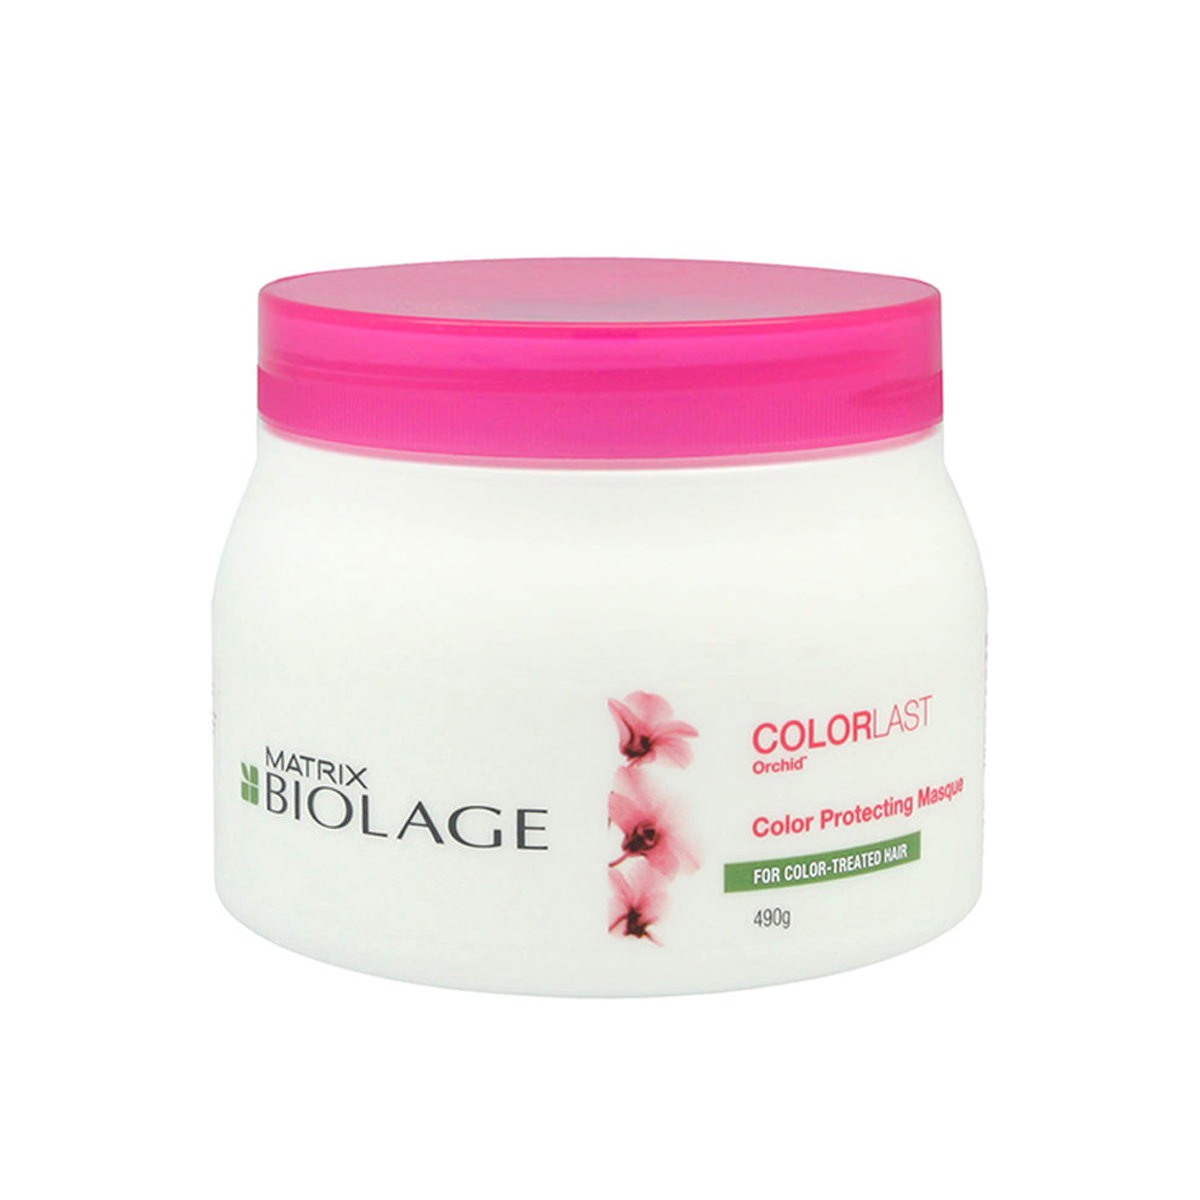 Matrix-Biolage-Colorlast-Color-Protecting-Masque-sfw(2)